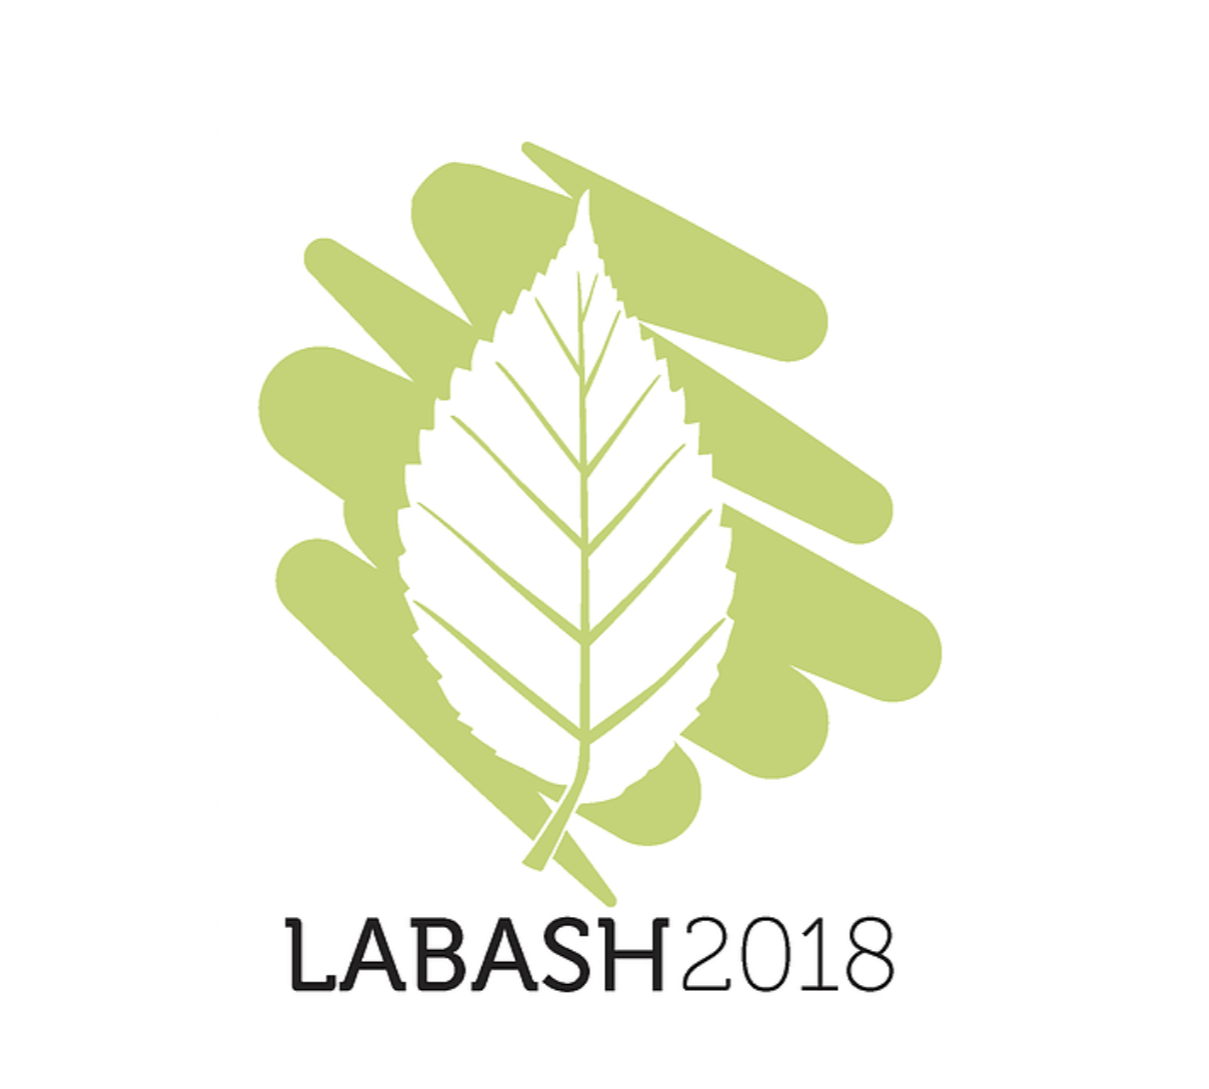 Alyssa Garcia and Parul Sharma will be speaking at the 2018 LABash conference on Kick-Starting Urbanism - April 2018